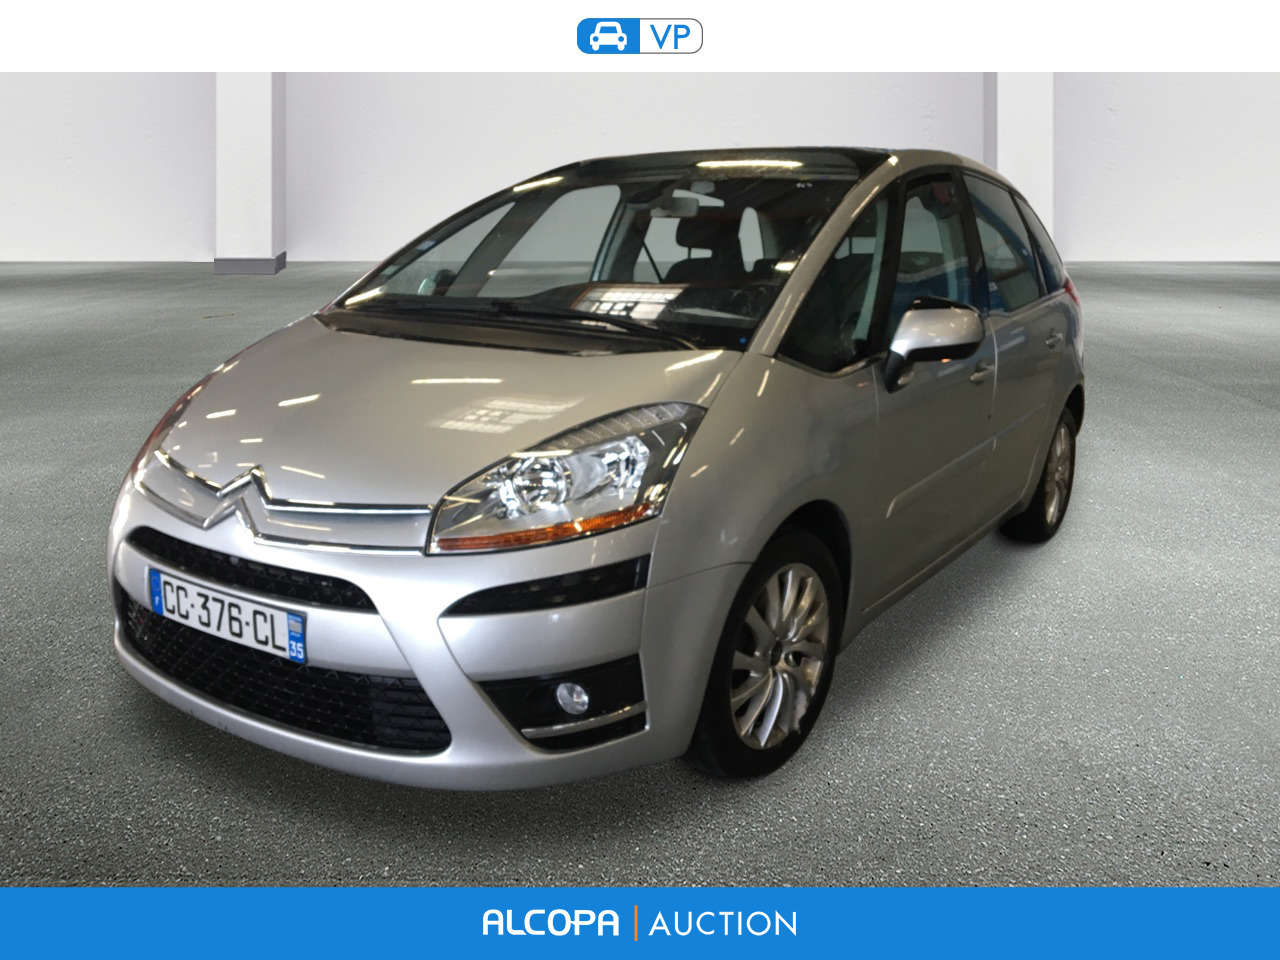 citroen c4 c4 picasso 1 6 hdi110 pack dynamique fap alcopa auction. Black Bedroom Furniture Sets. Home Design Ideas